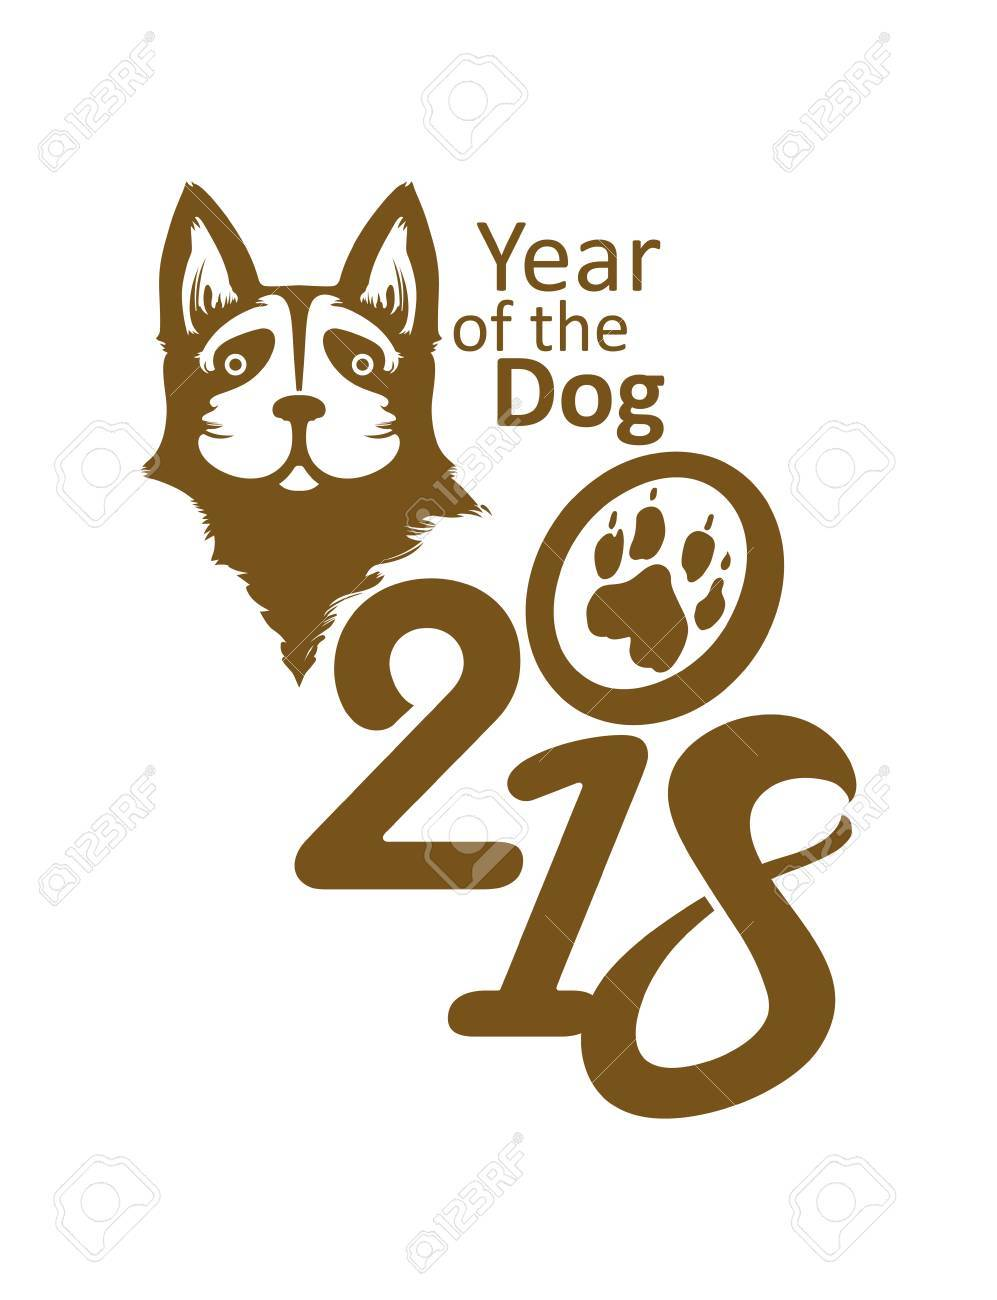 Chinese shepherd images stock pictures royalty free chinese symbol 2018 year of the dog on the chinese calendar biocorpaavc